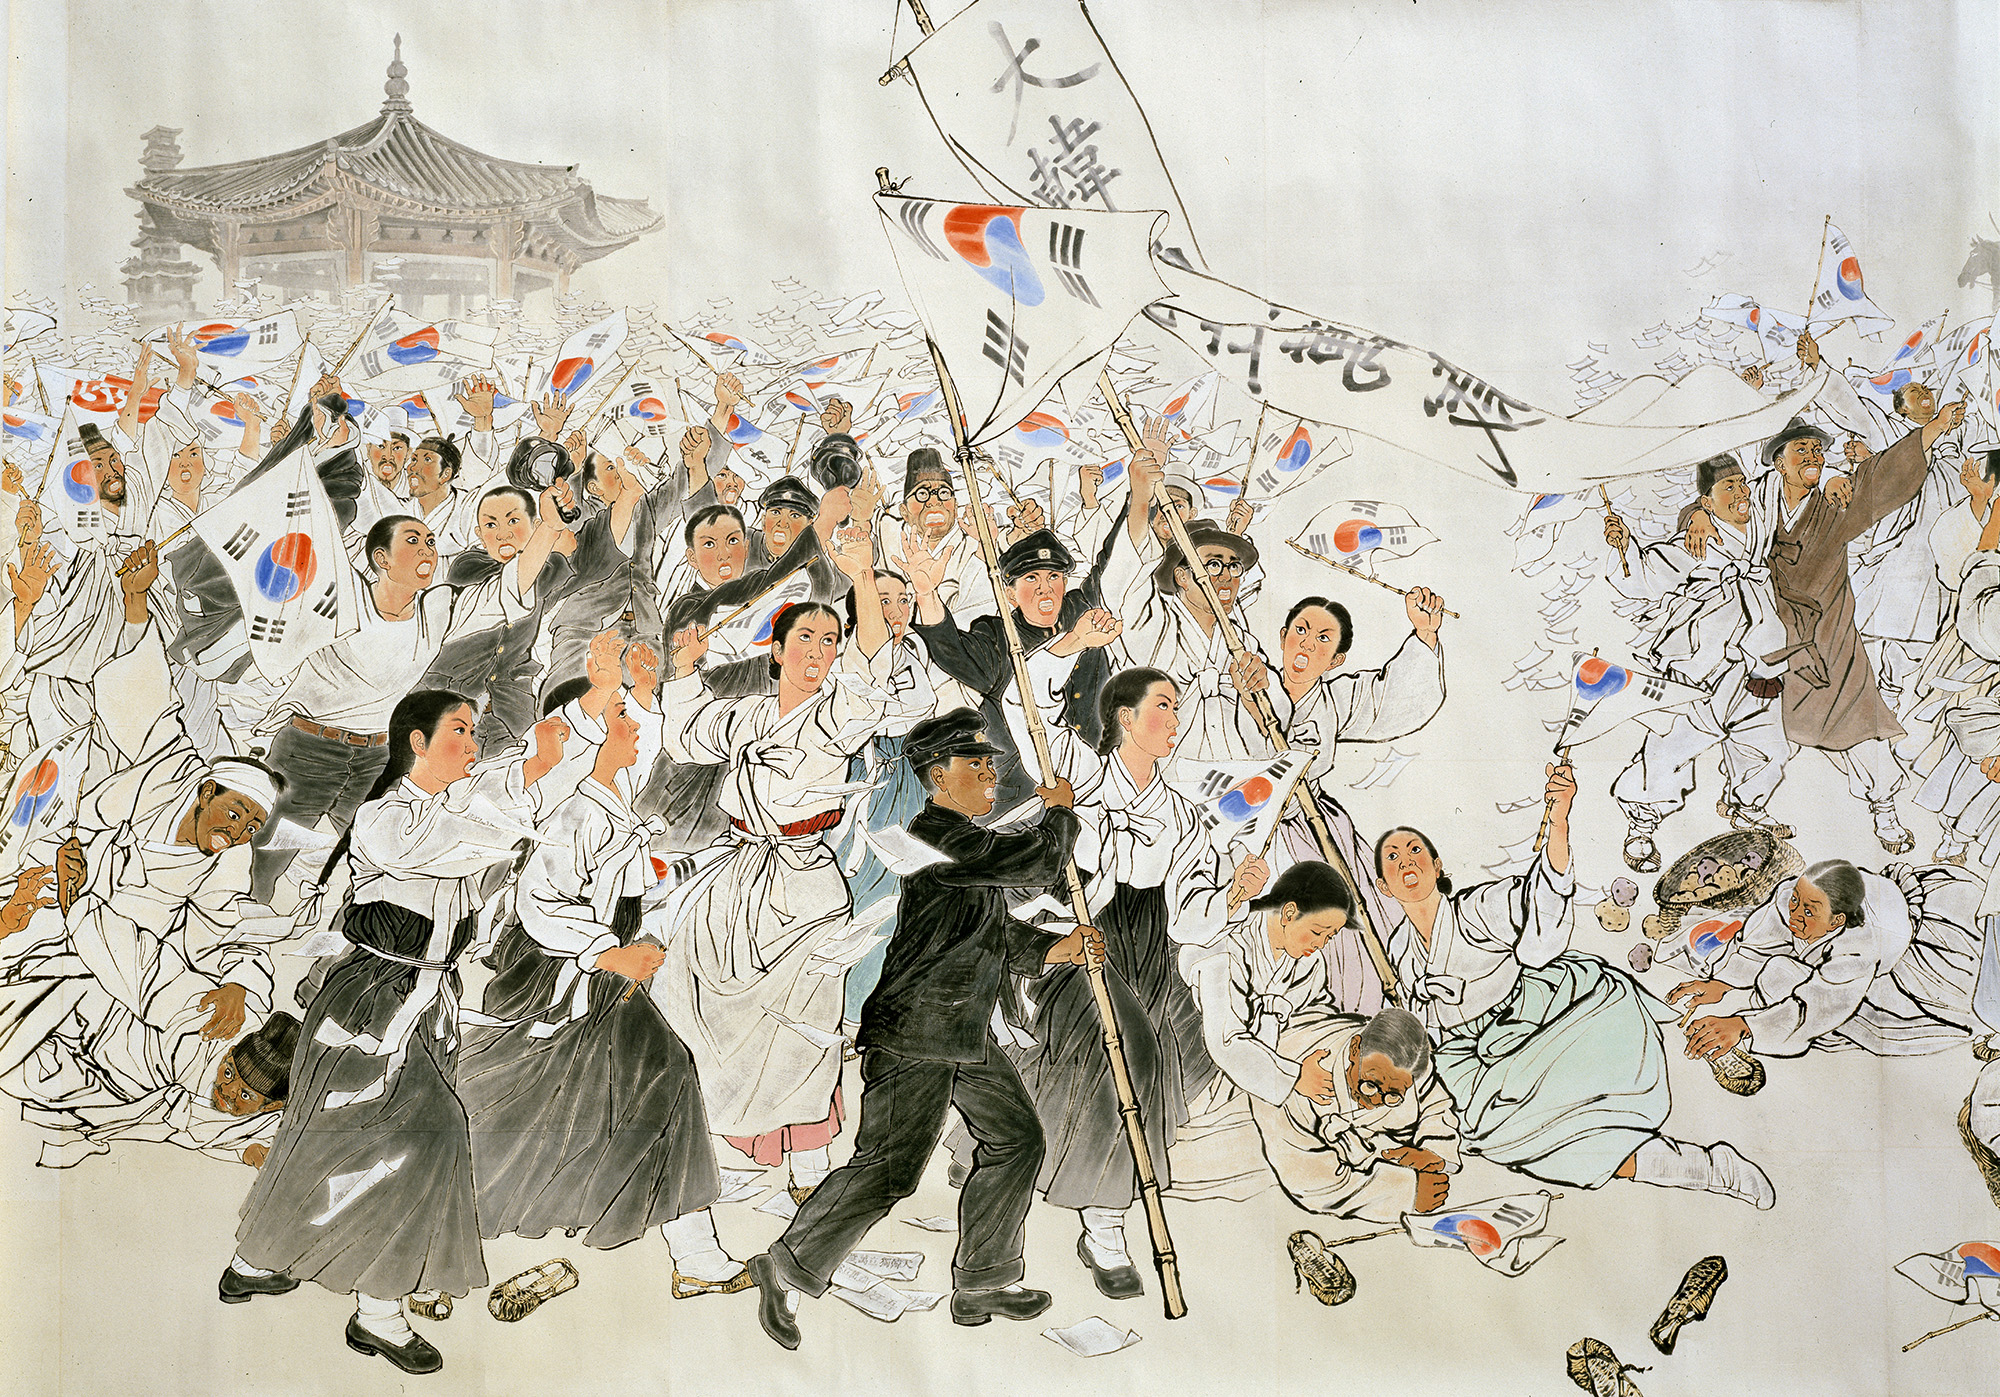 Feature piece of the Looking Back at the Independence Movement of Korea Exhibition. (Suh Se-ok. The March 1st Independence Movement (detail). Korea, 1986. Ink and color. 776.6 x 127.2 in)